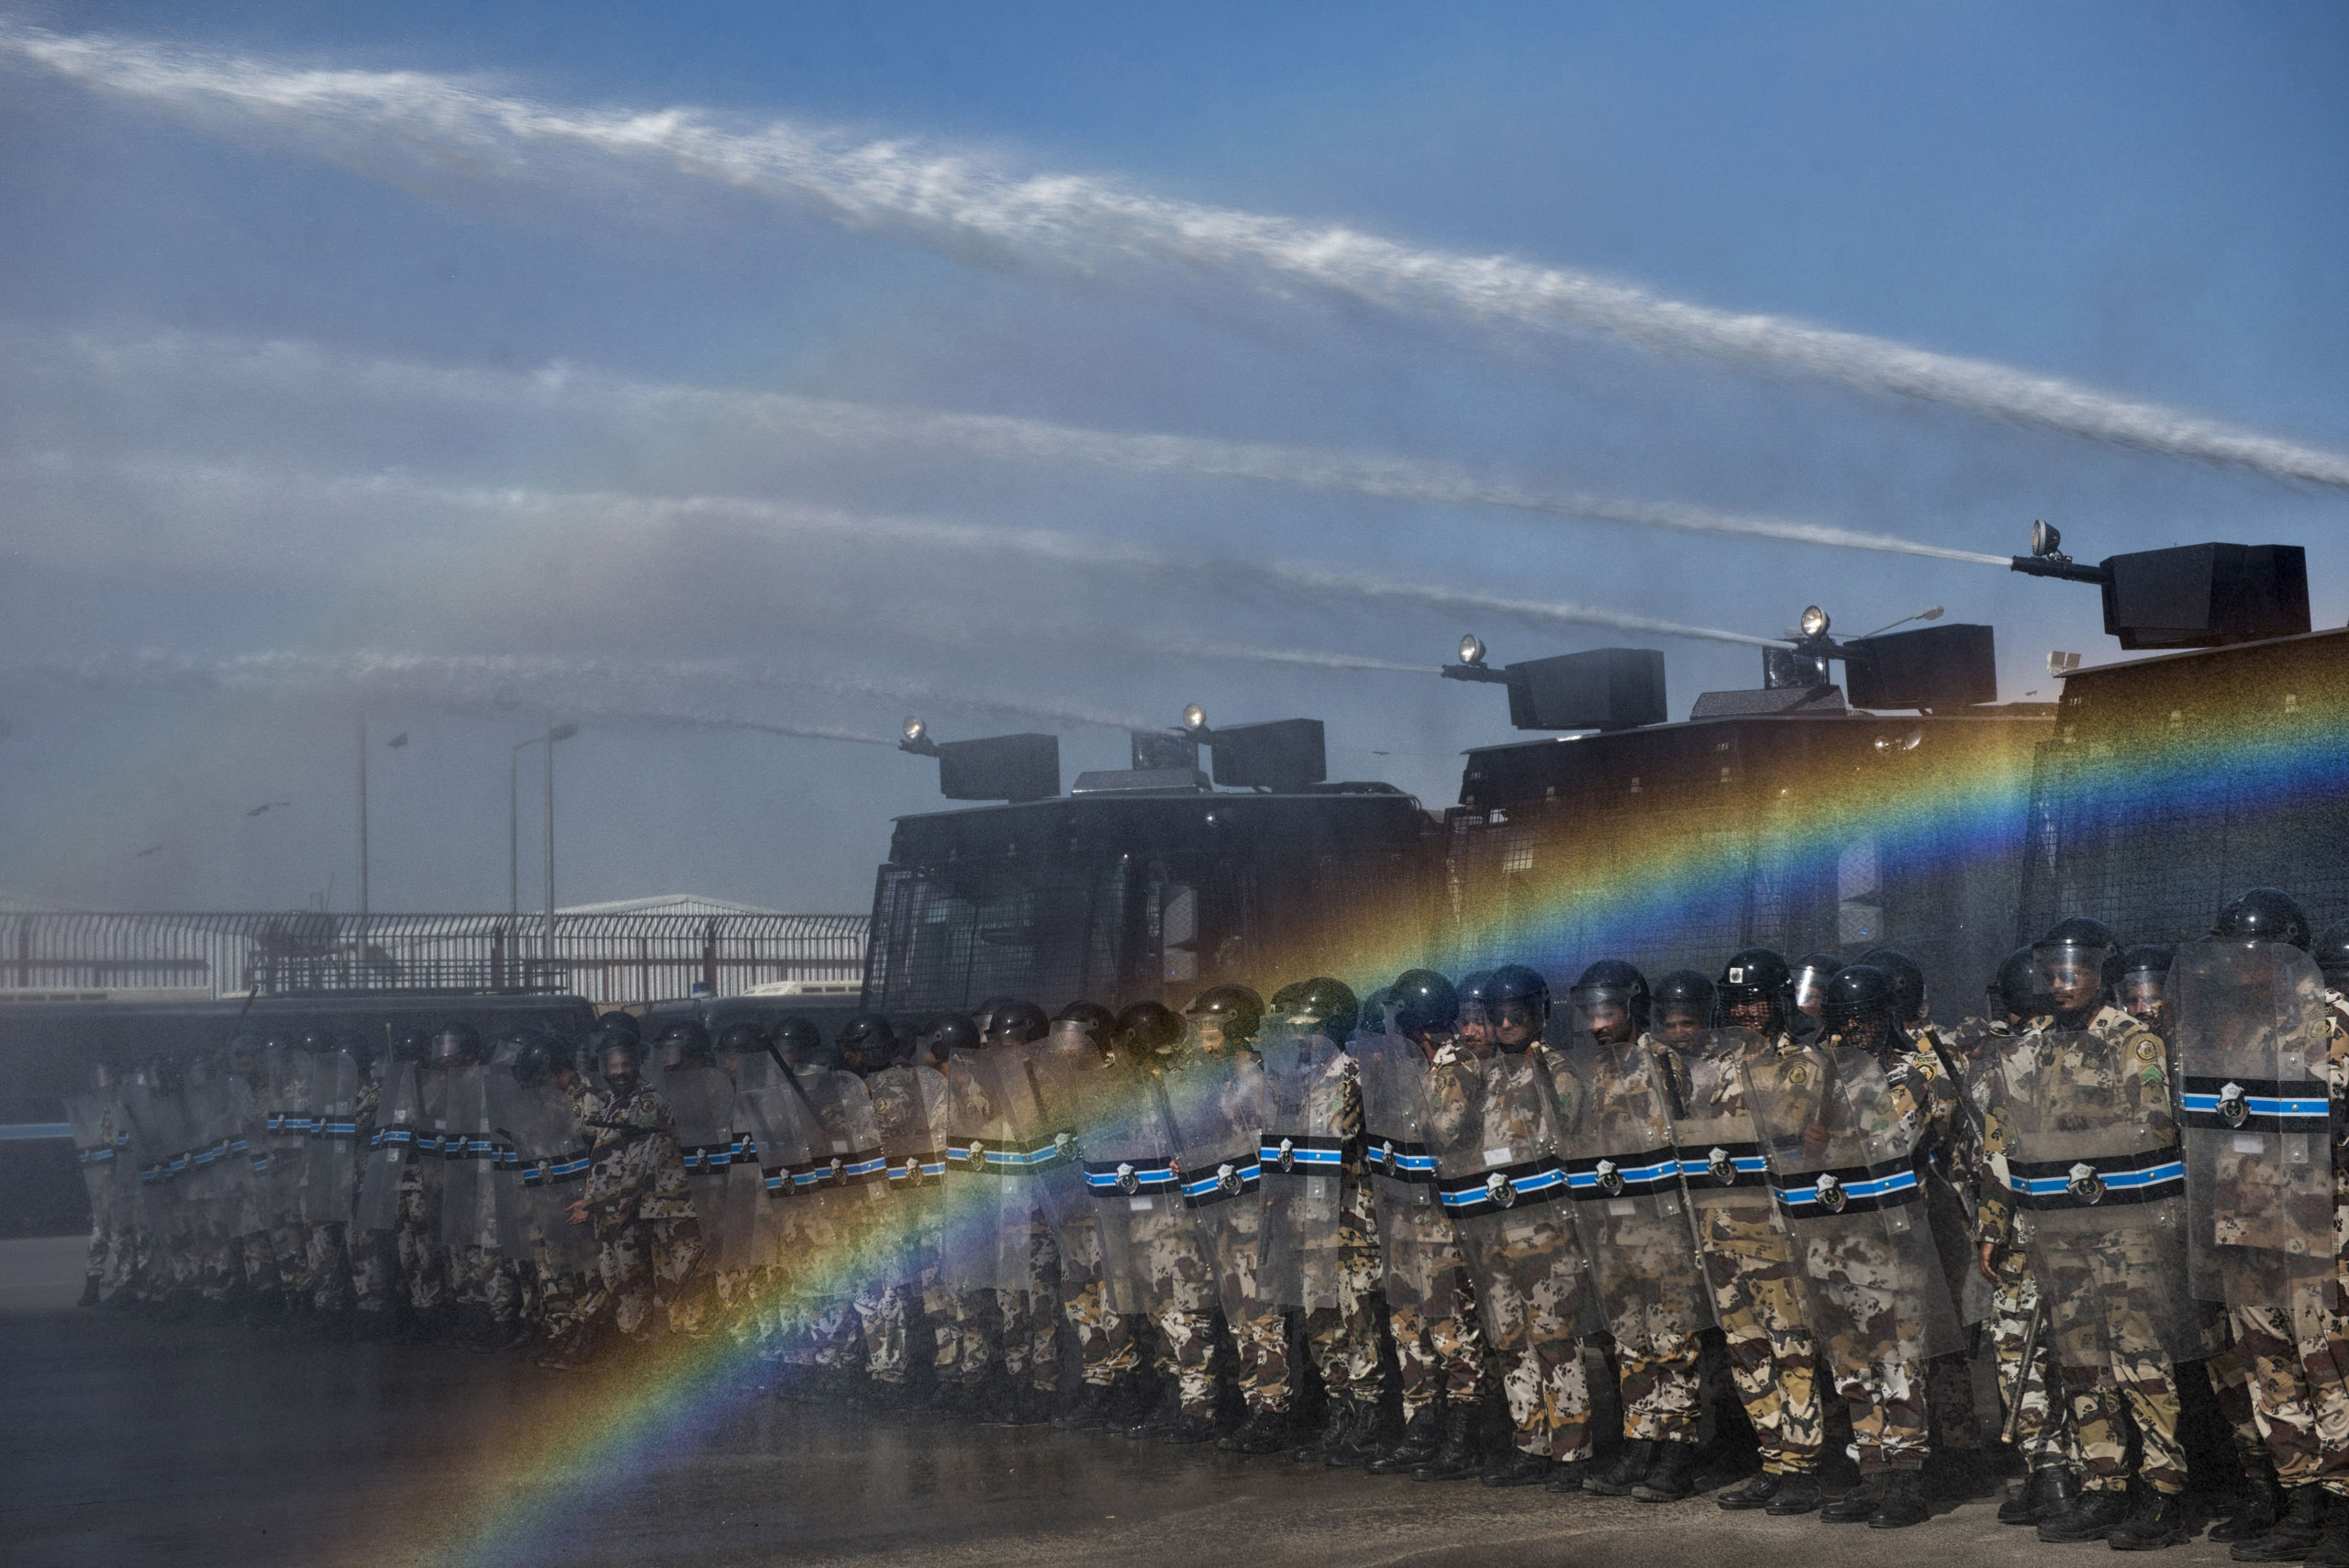 Troops with the Saudi Special Security Forces simulate how they would break up a demonstration with water cannons and protective gear, March 5, 2013.